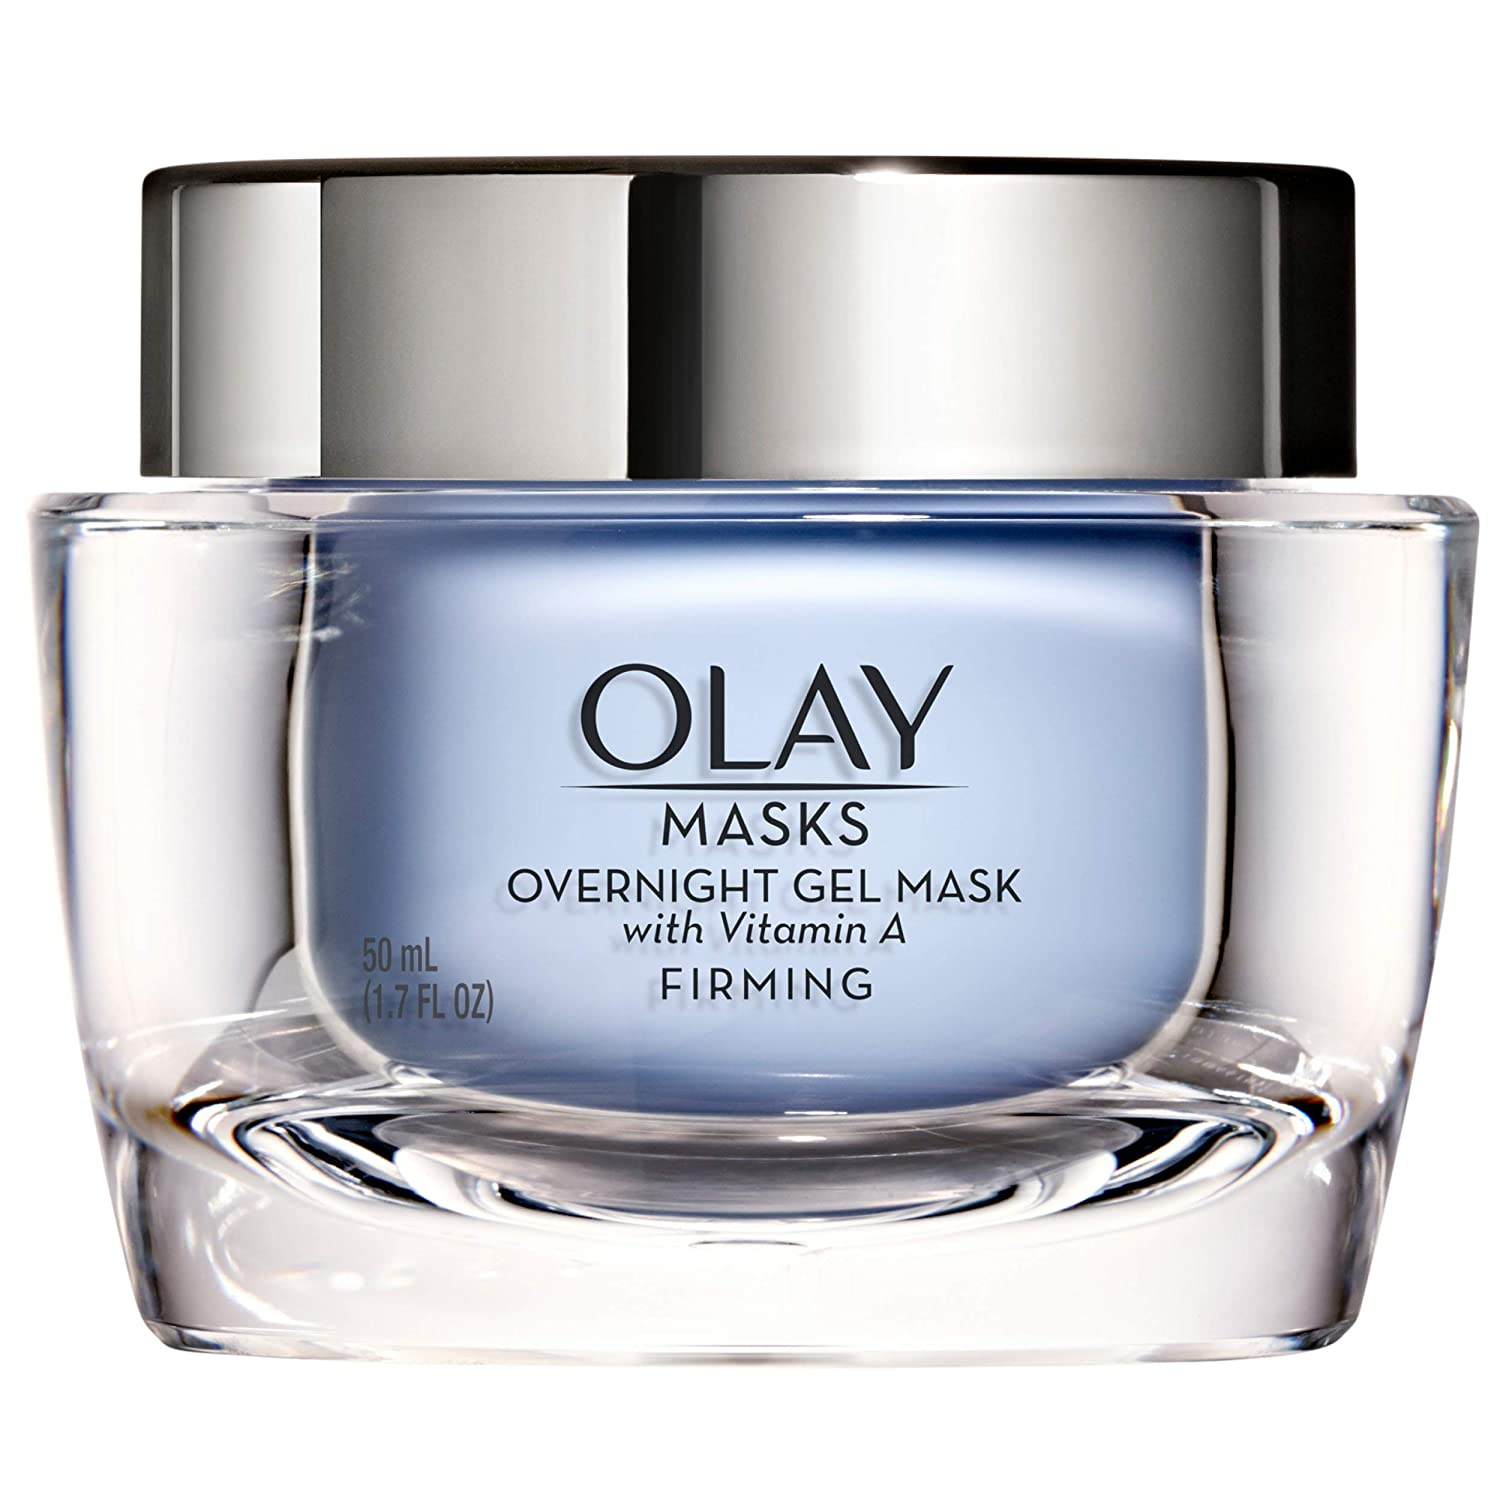 Olay Overnight Gel Mask Firming